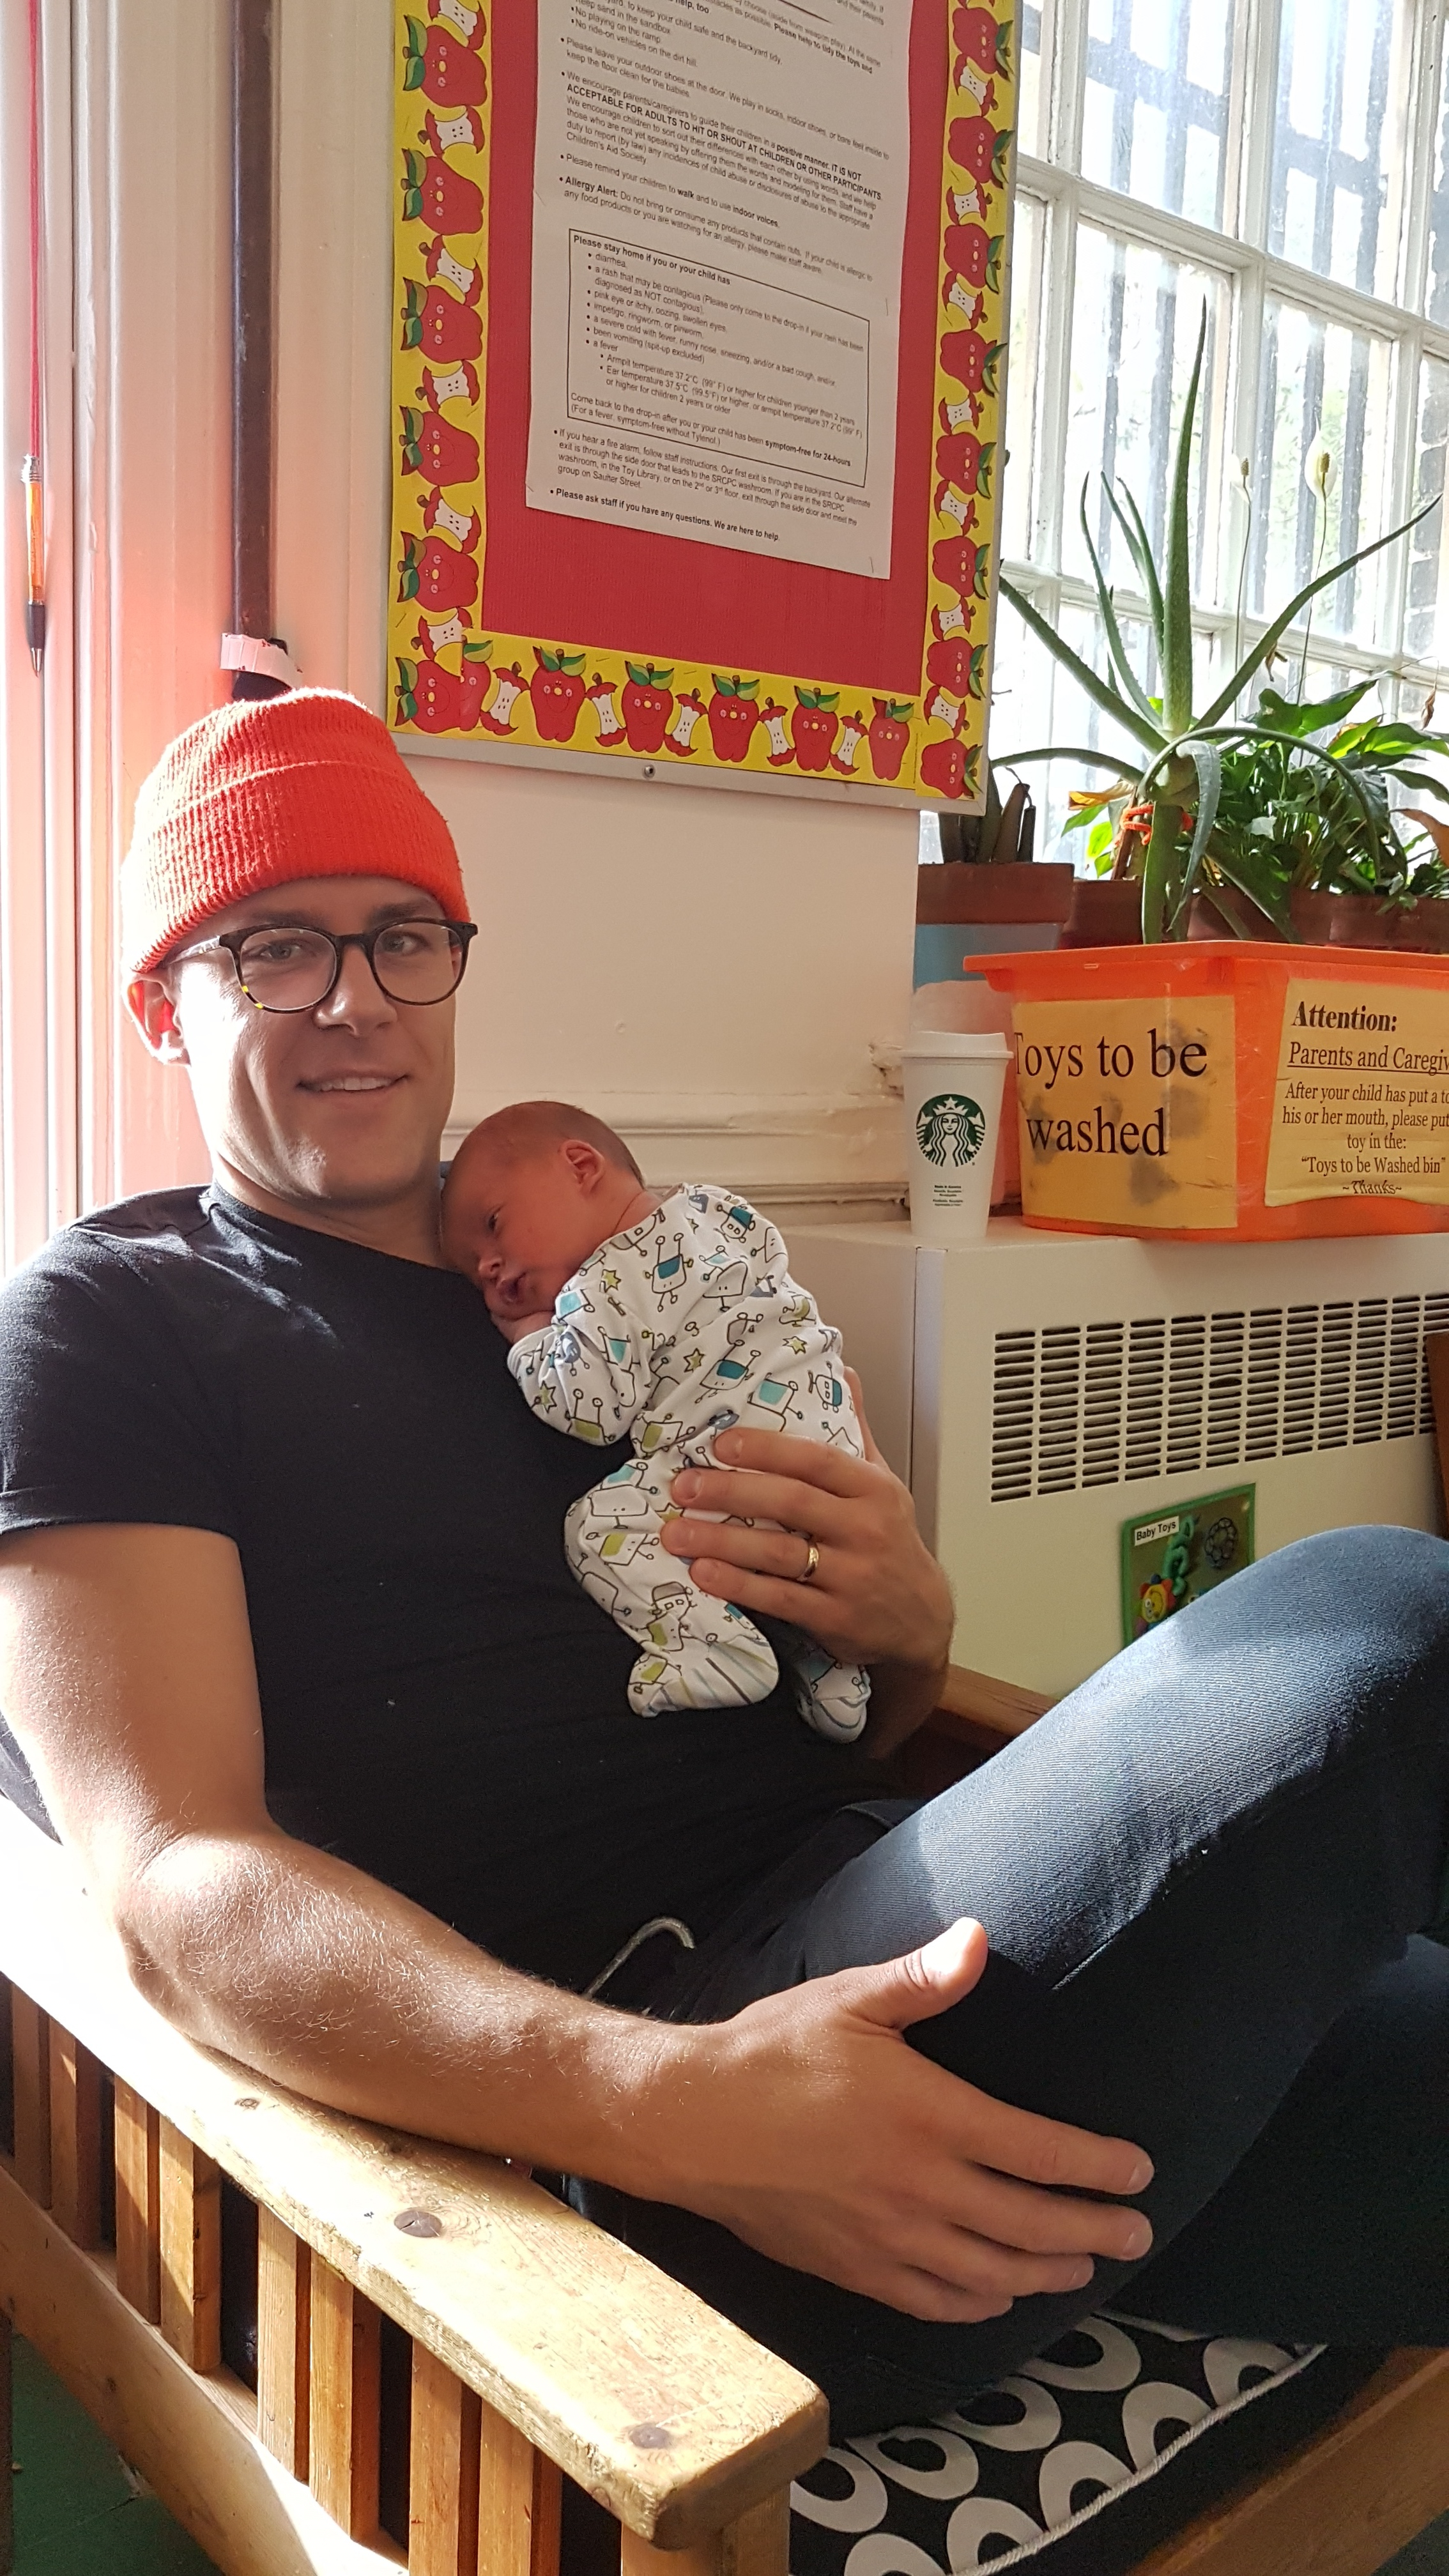 Daddy and new baby!